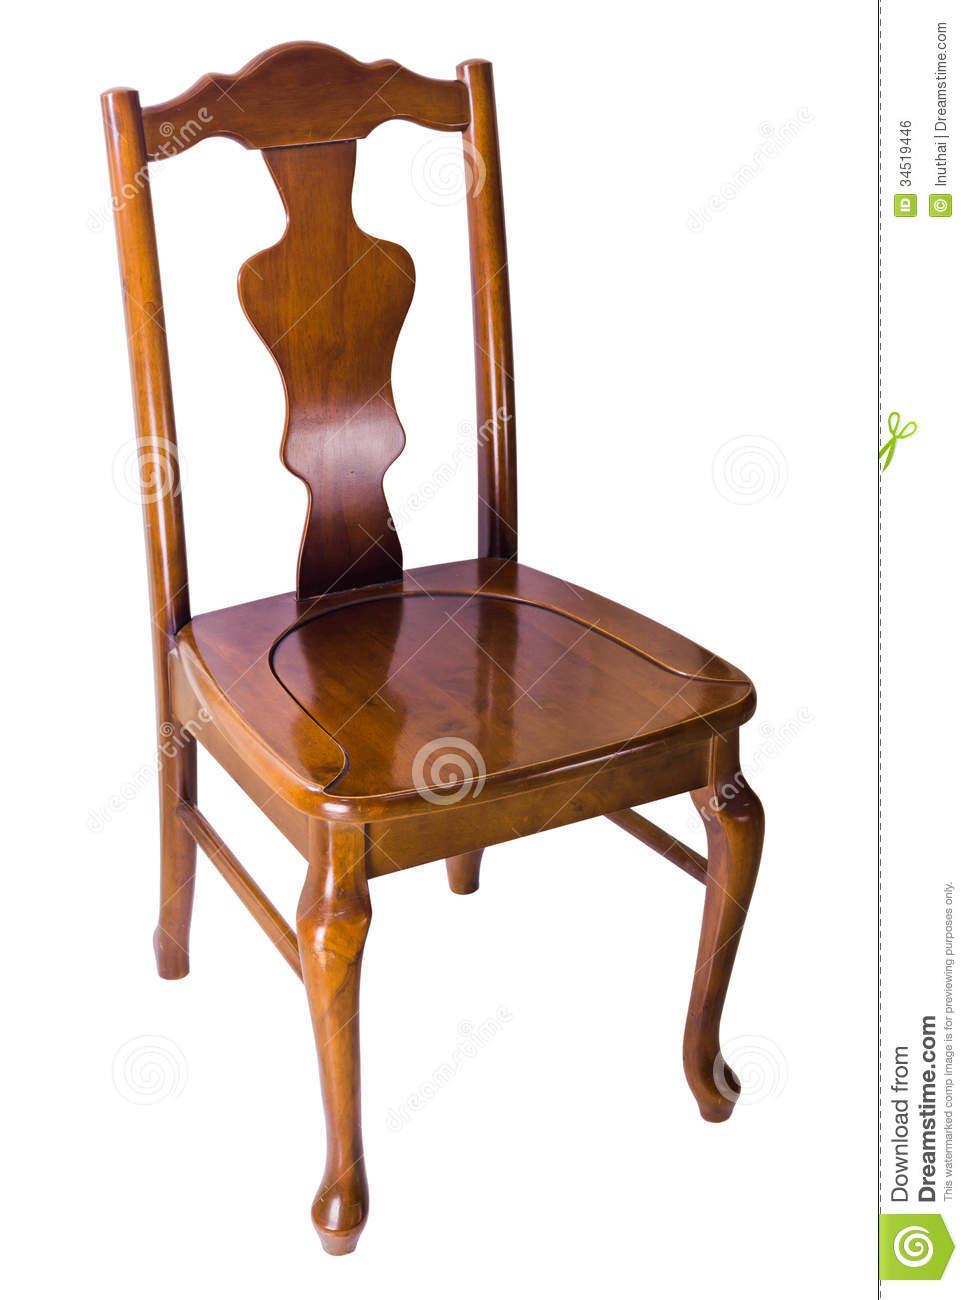 Styles Of Antique Furniture Unique Old Wooden Chair Vintage Style Stock Image Of Empty